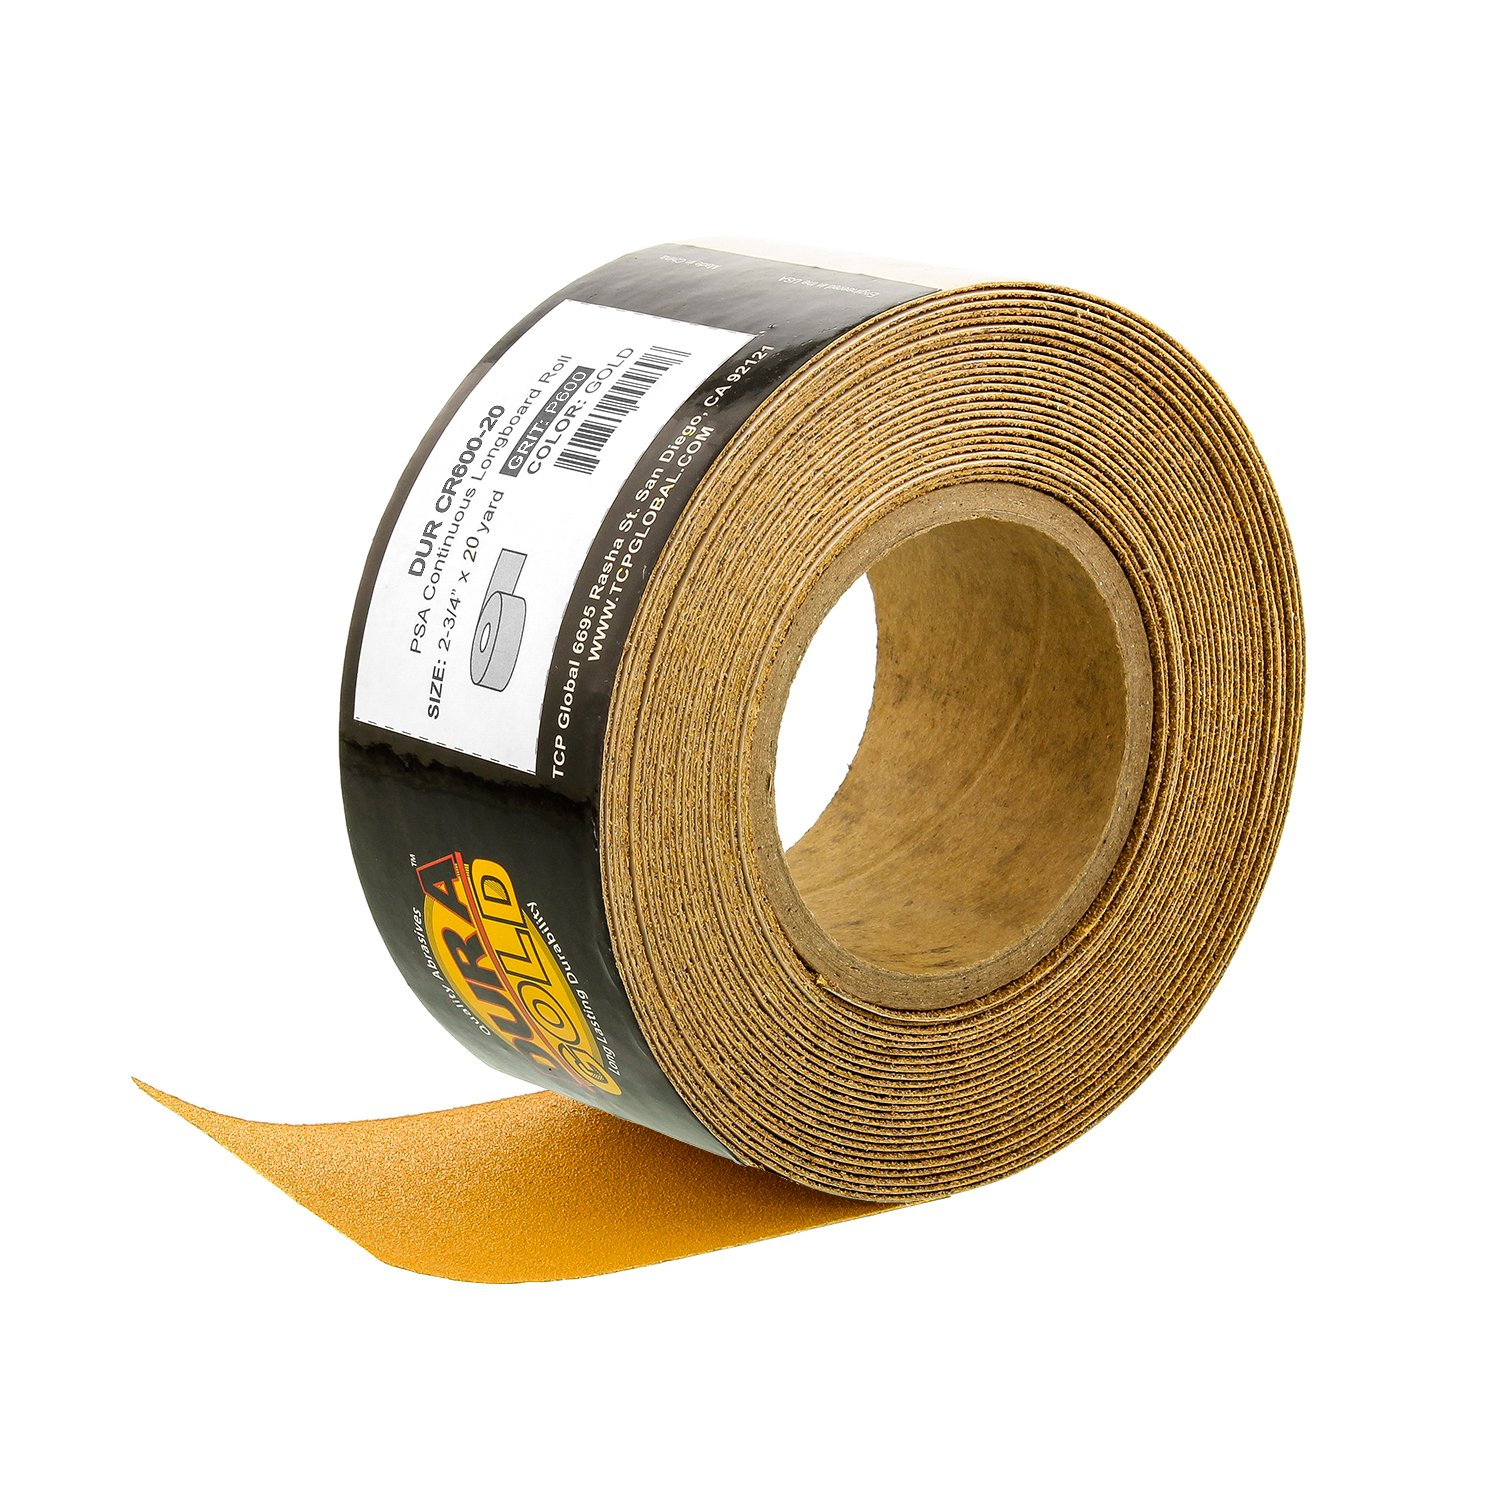 Dura-Gold Premium - 600 Grit Gold - Longboard Continuous Roll 20 Yards Long by 2-3/4'' Wide PSA Self Adhesive Stickyback Longboard Sandpaper for Automotive and Woodworking